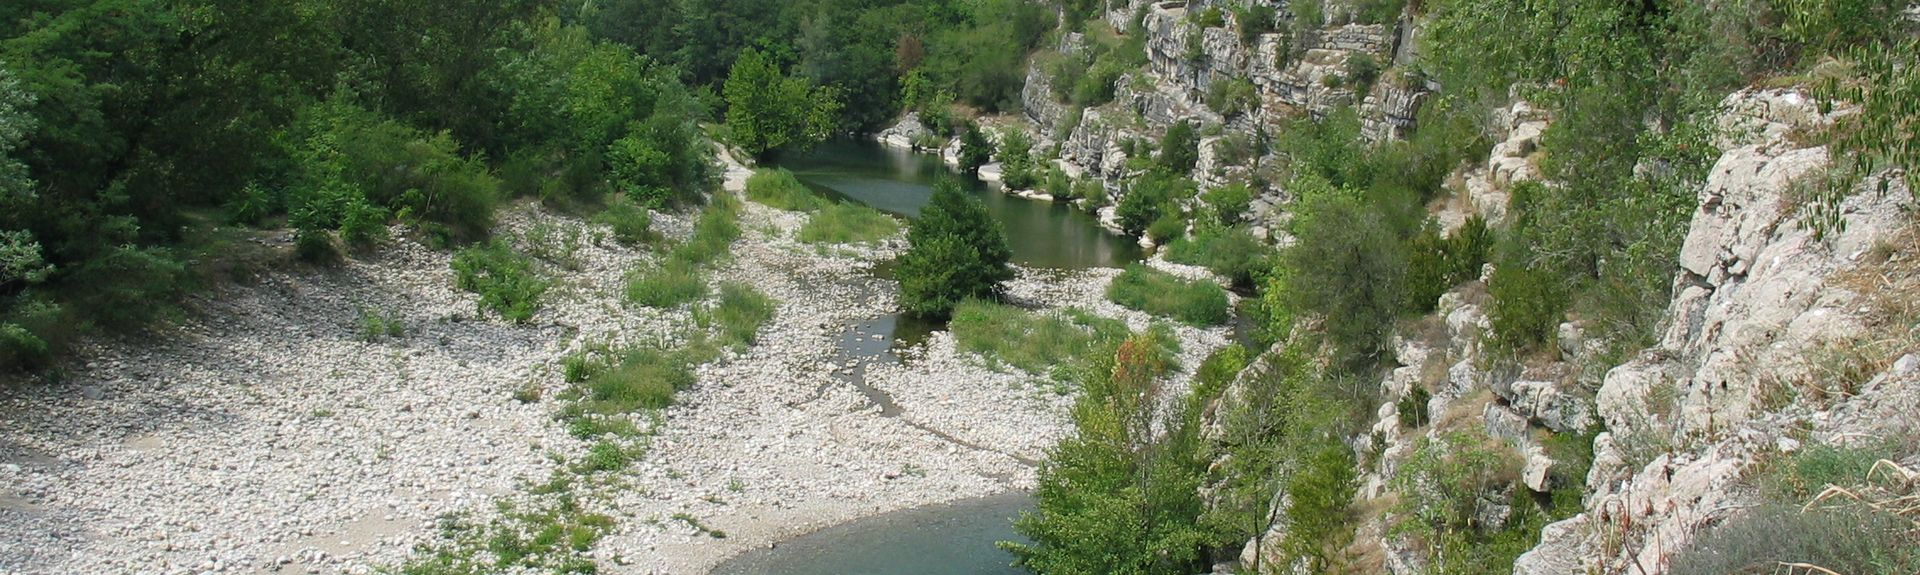 Grospierres, Ardeche (department), France